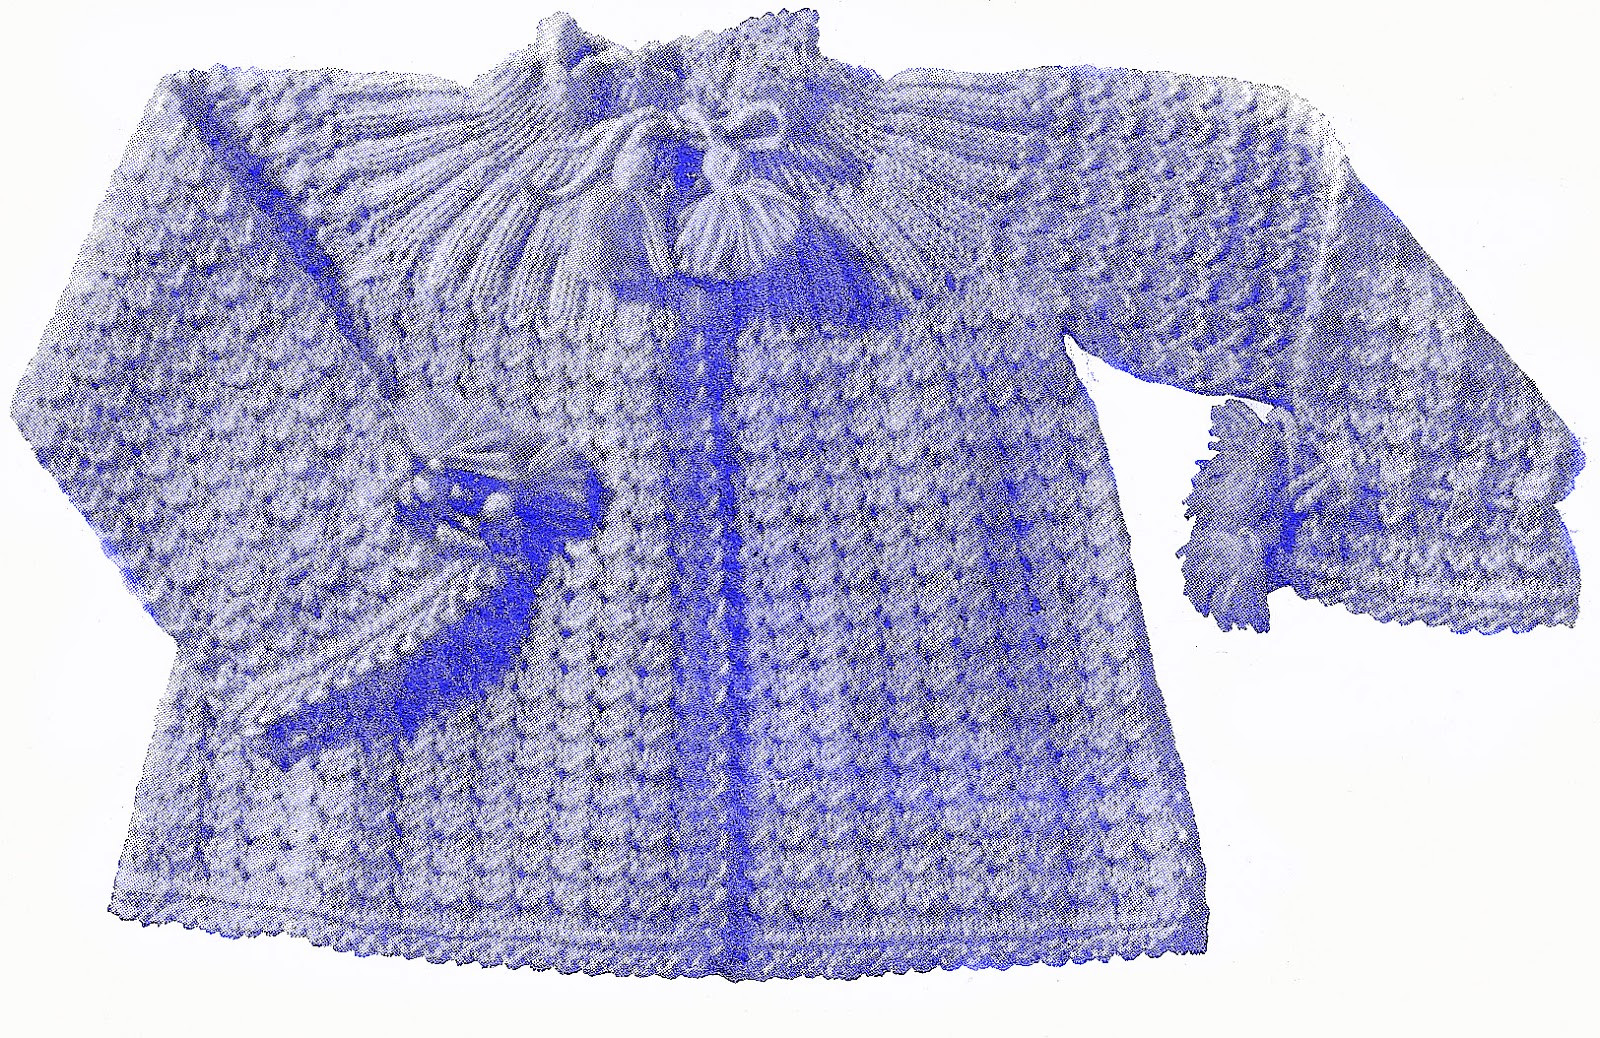 Baby Sweater Patterns Elegant Sentimental Baby Vintage Knit Patterns for Babies Of Beautiful 41 Images Baby Sweater Patterns